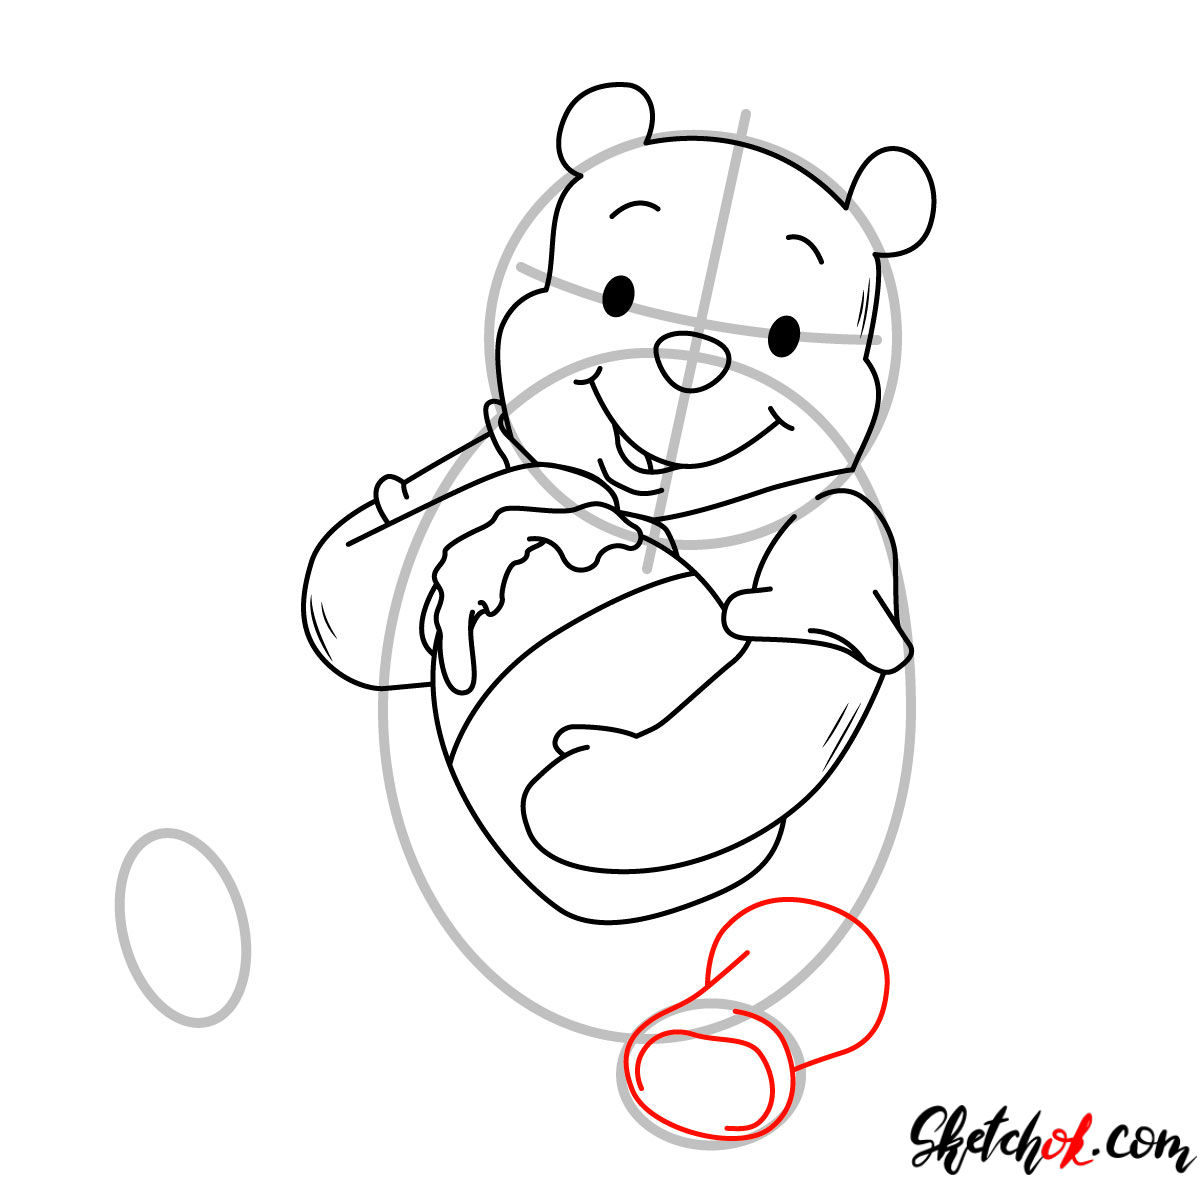 How to draw Winnie-the-Pooh eating honey - step 07